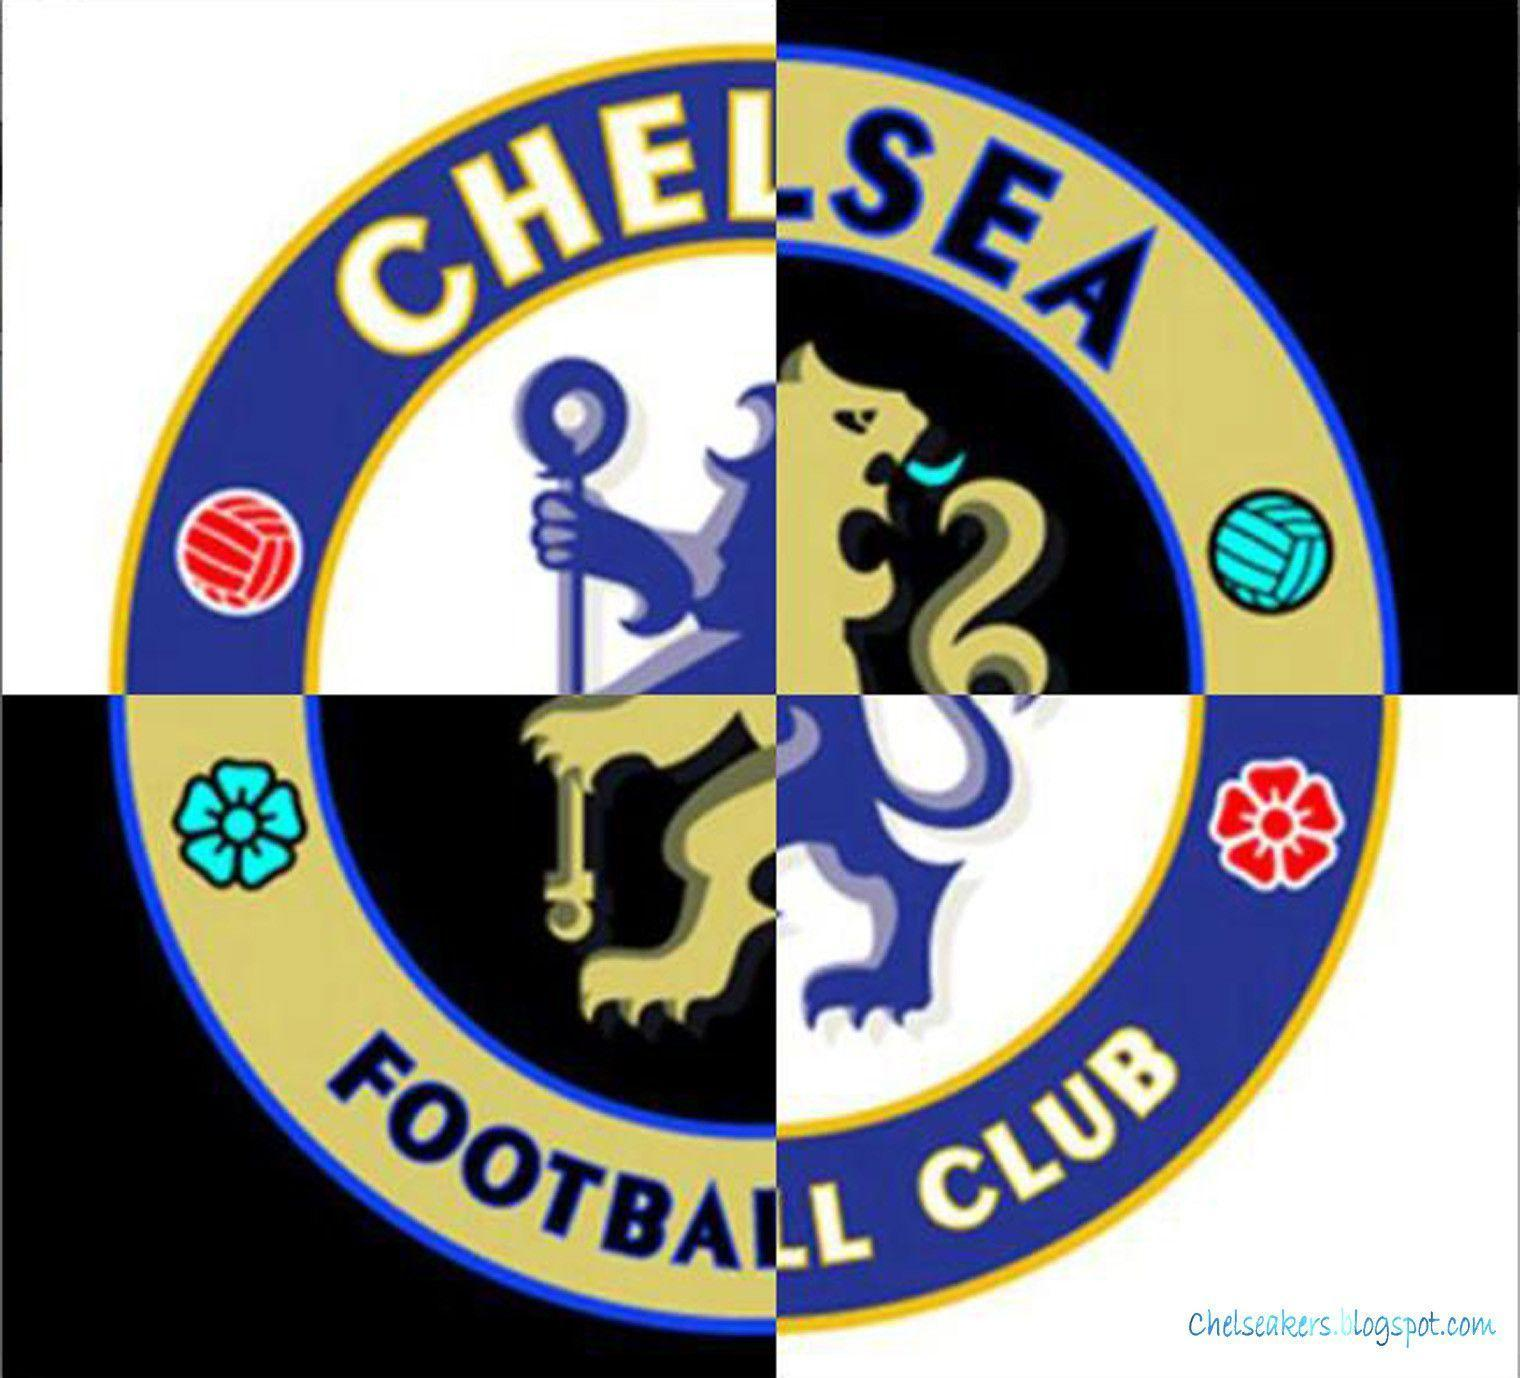 Chelsea Fc Logo Best HD Wallpapers Wallpapers computer